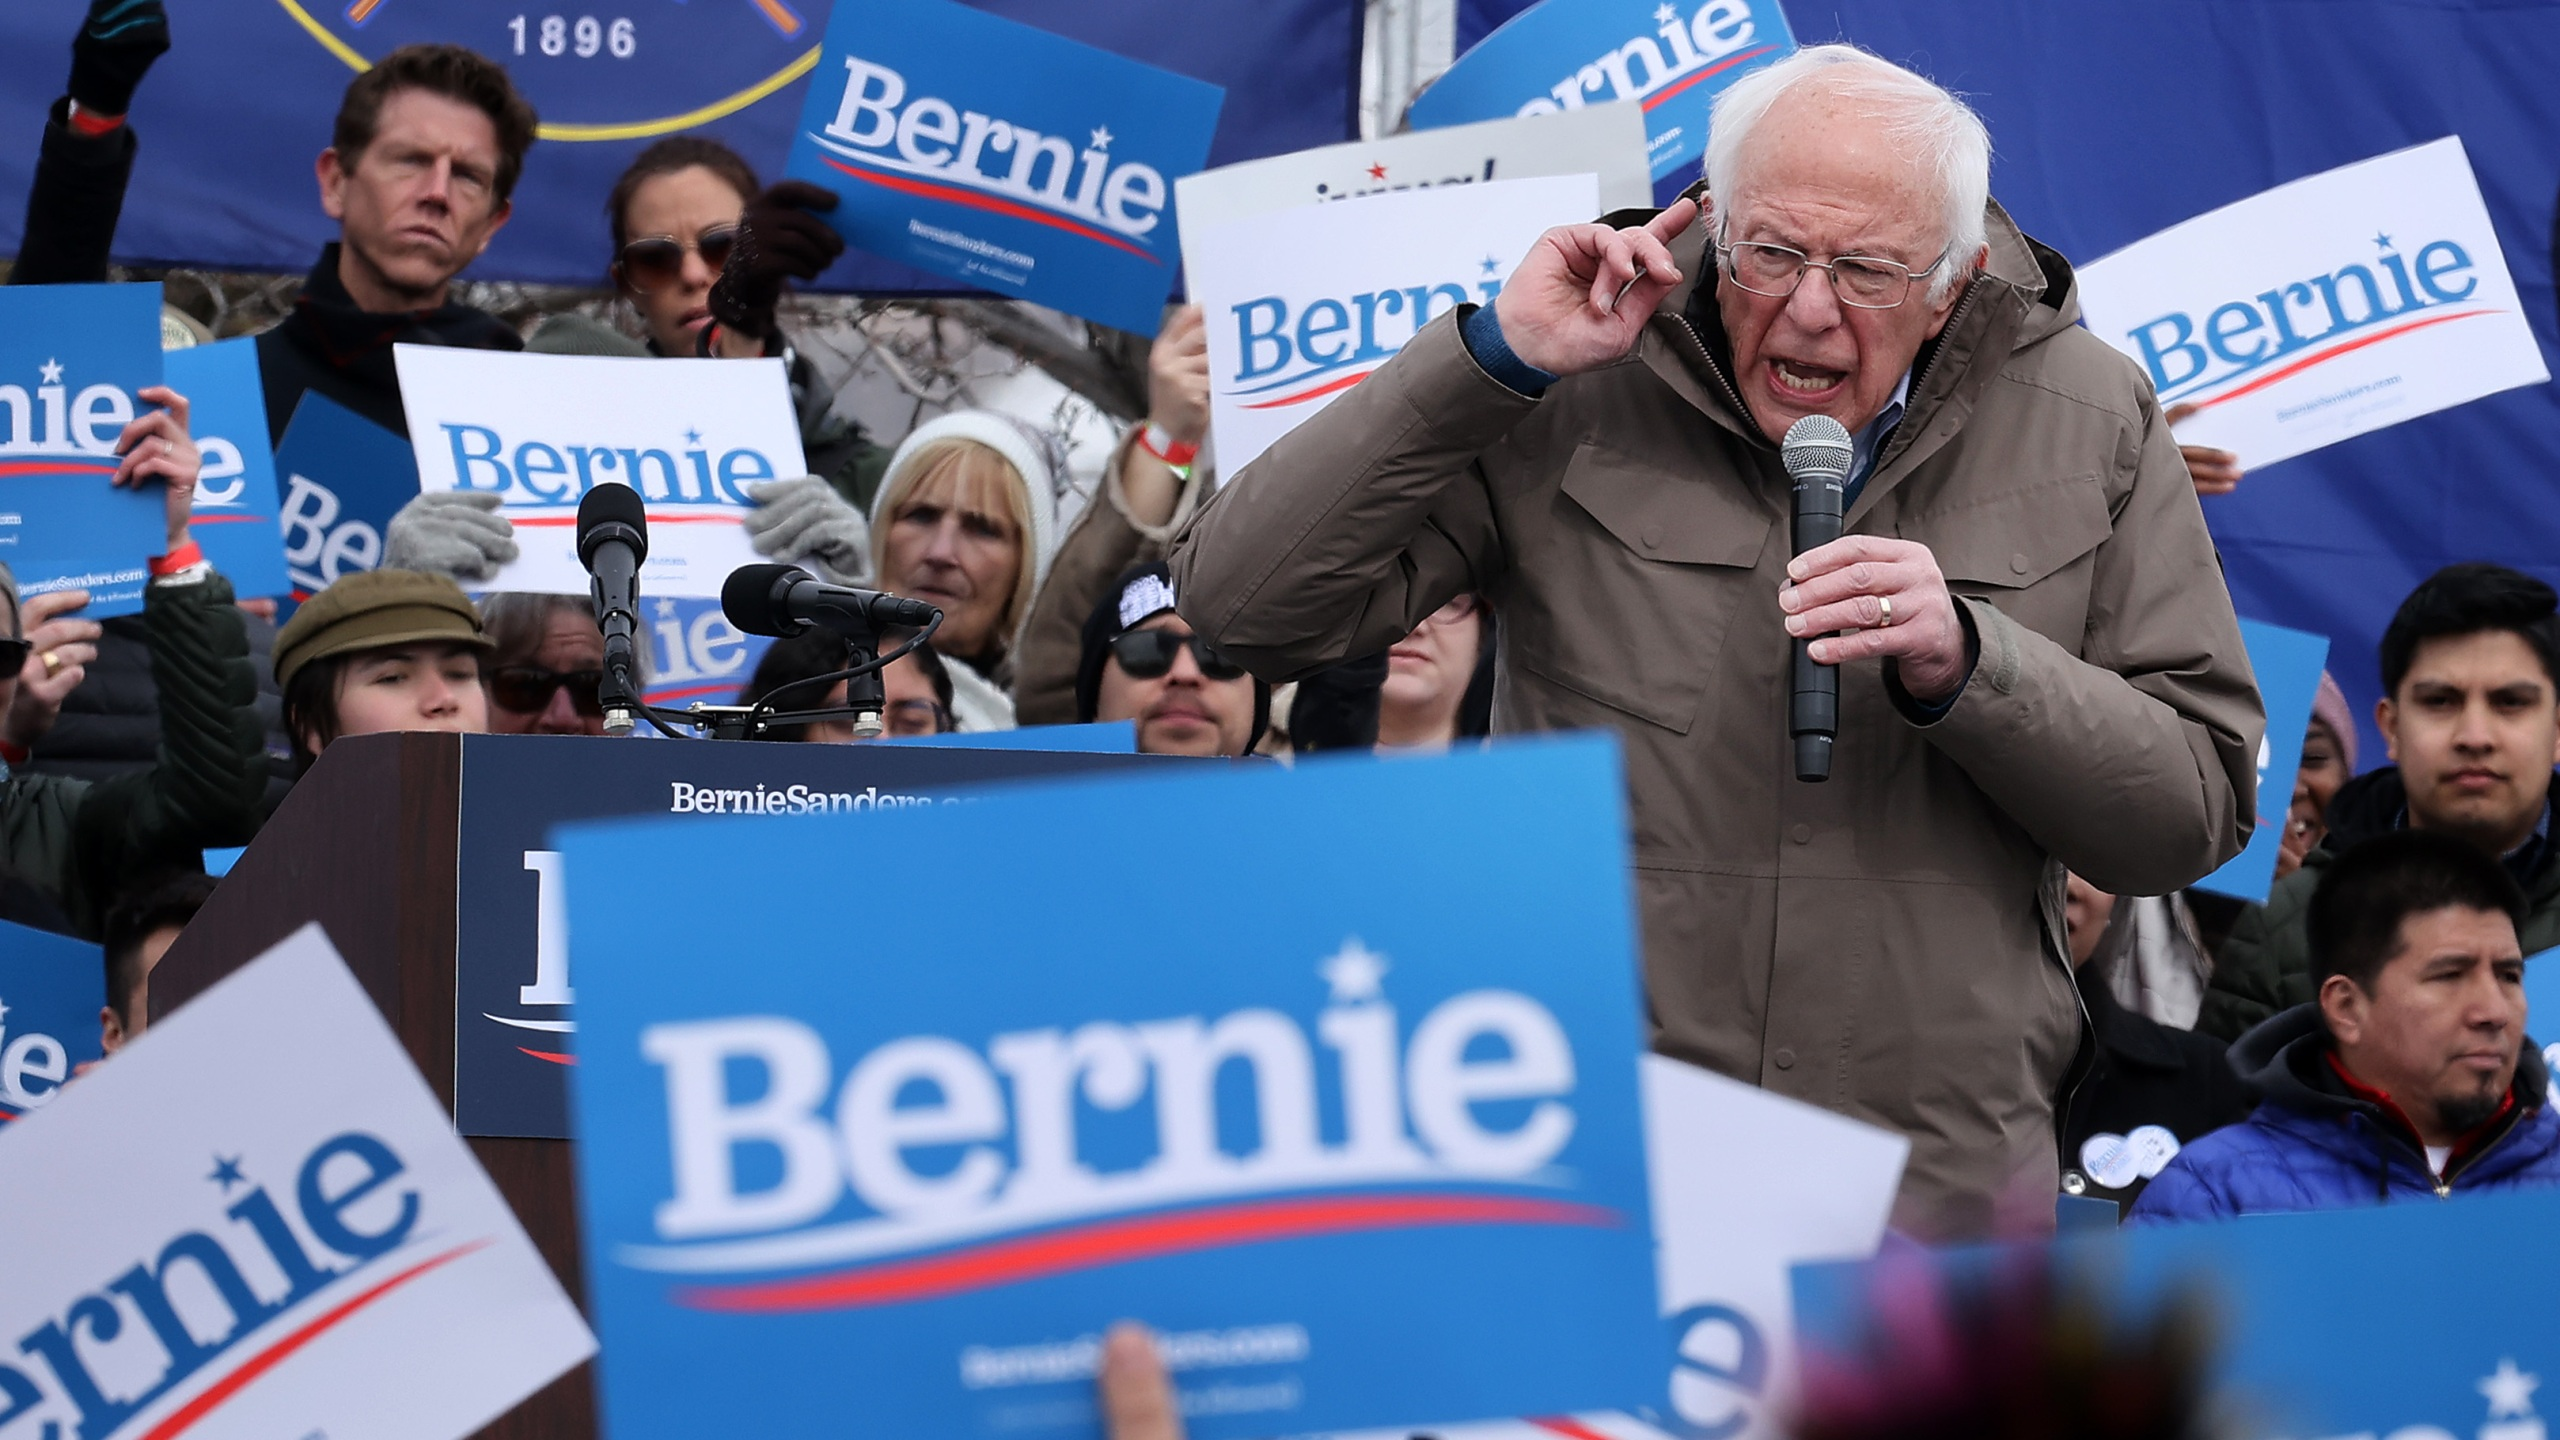 Democratic presidential candidate Sen. Bernie Sanders addresses supporters during a campaign rally on March 2, 2020, in Salt Lake City, Utah. (Chip Somodevilla/Getty Images)